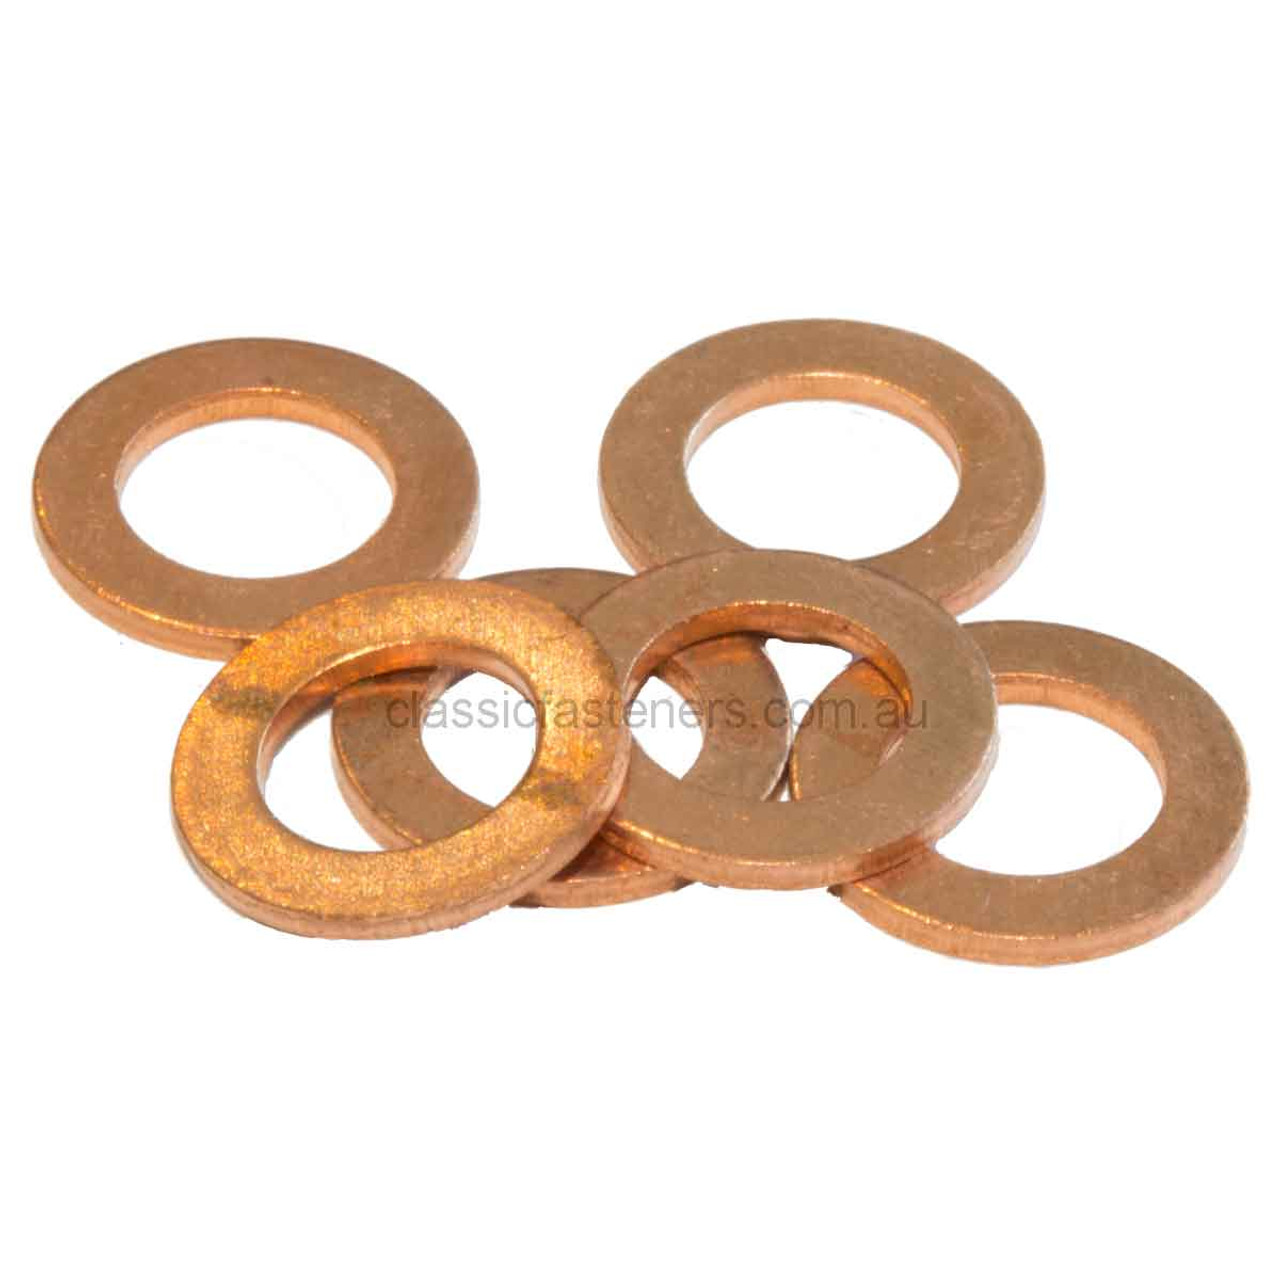 "1/4"" Copper Flat Washer"